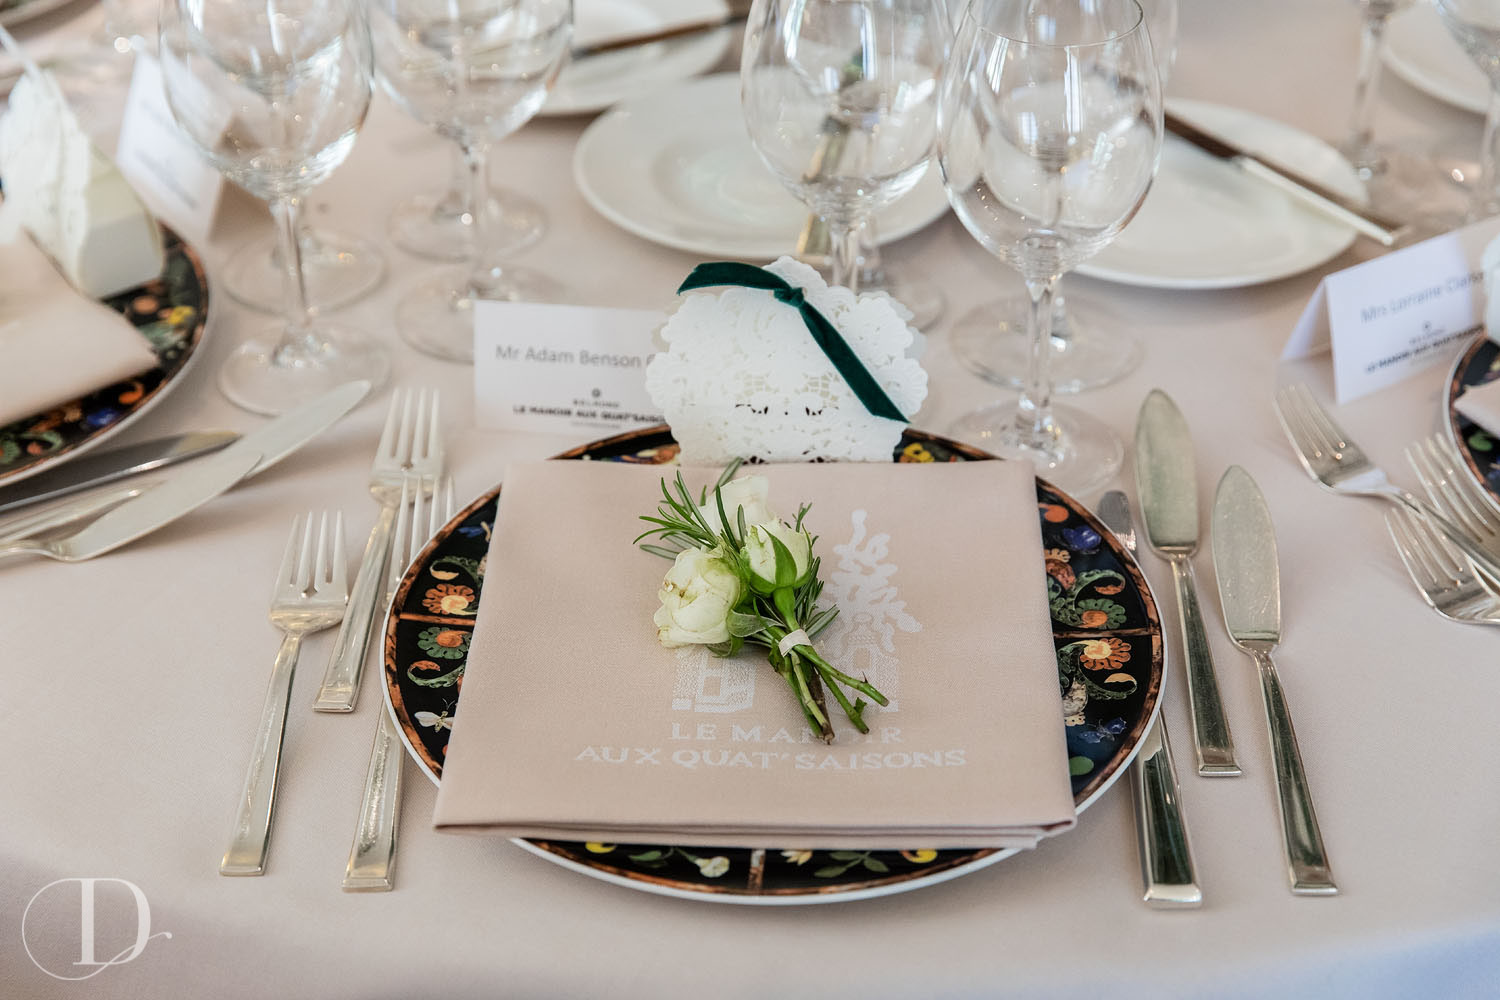 Le Manoir aux Quat'Saisons wedding place setting